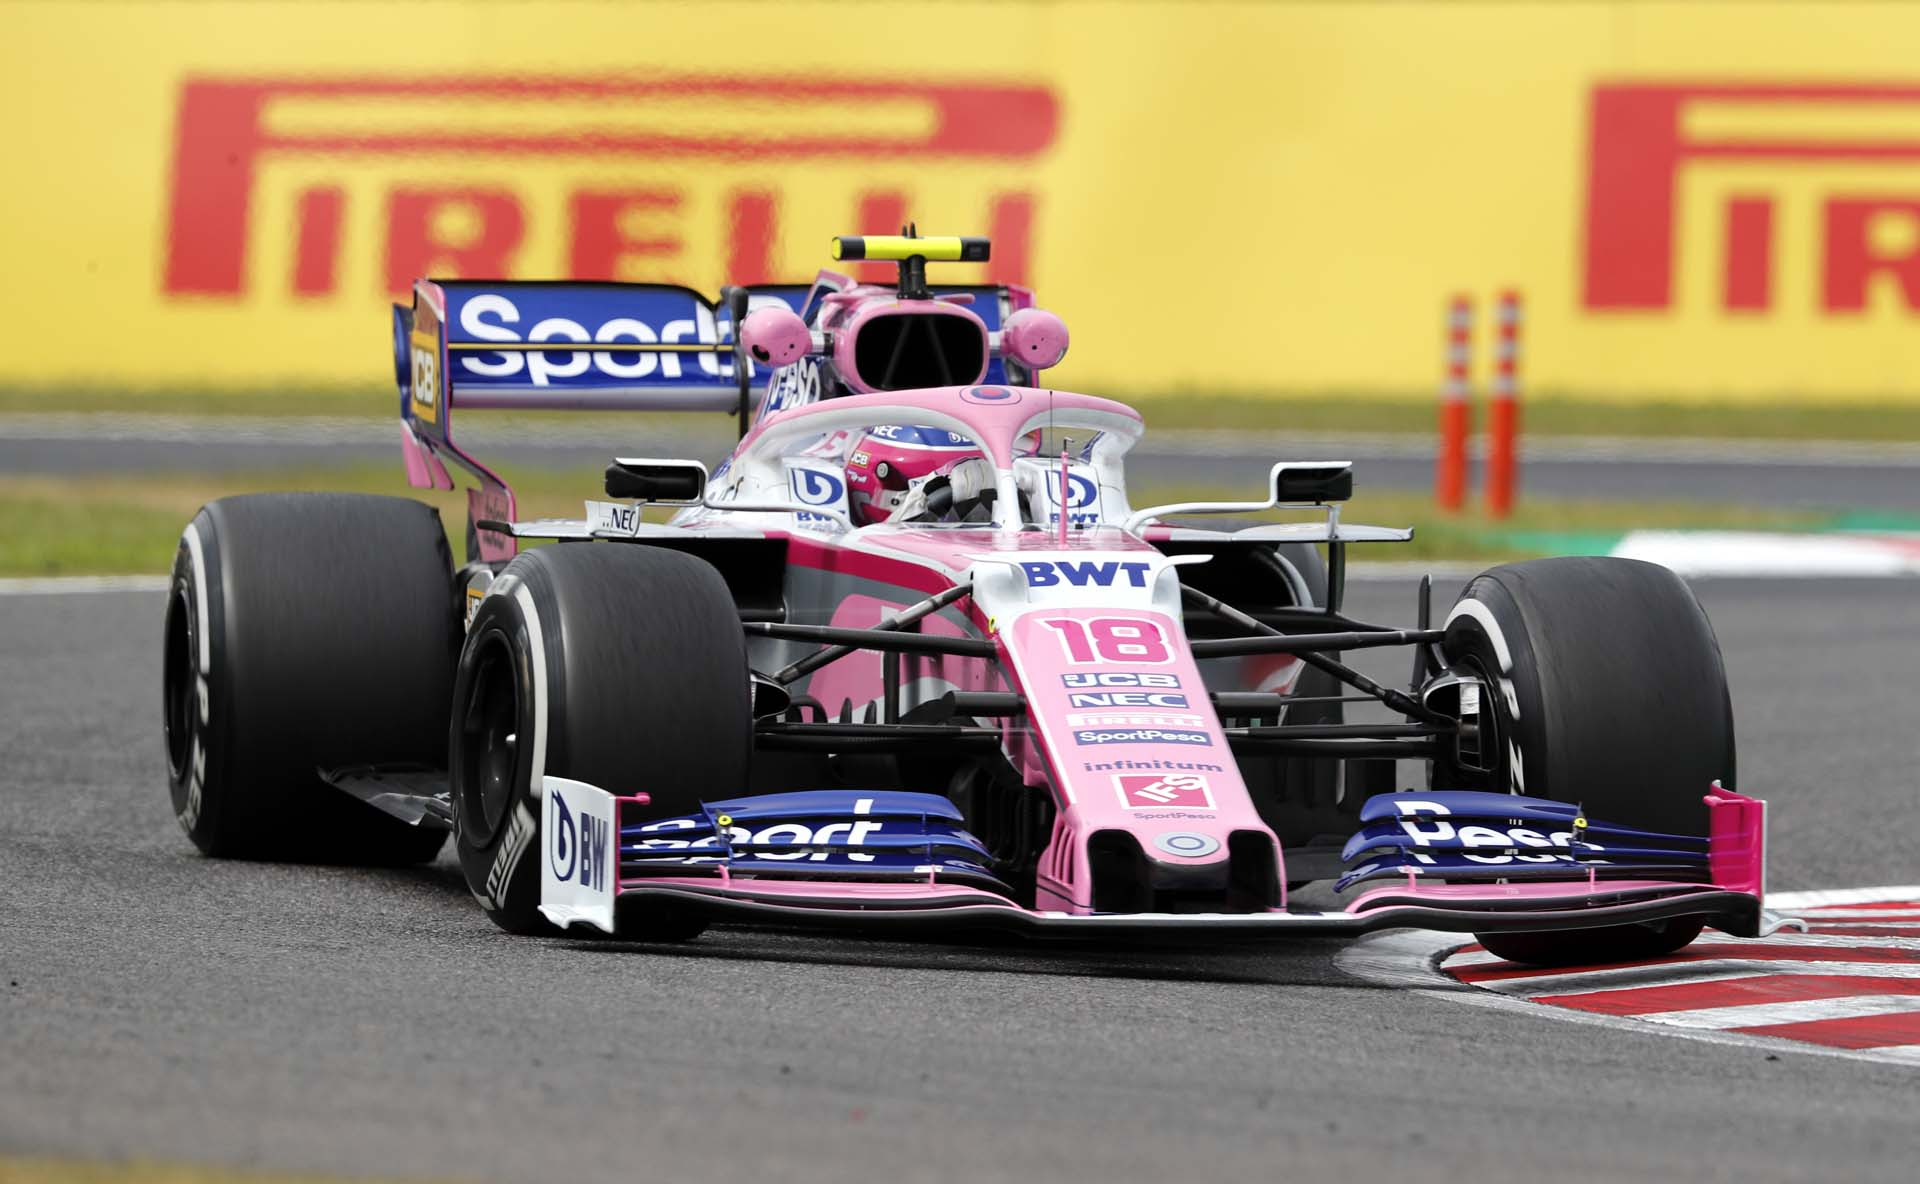 Lance Stroll, Racing Point RP19 during FP1